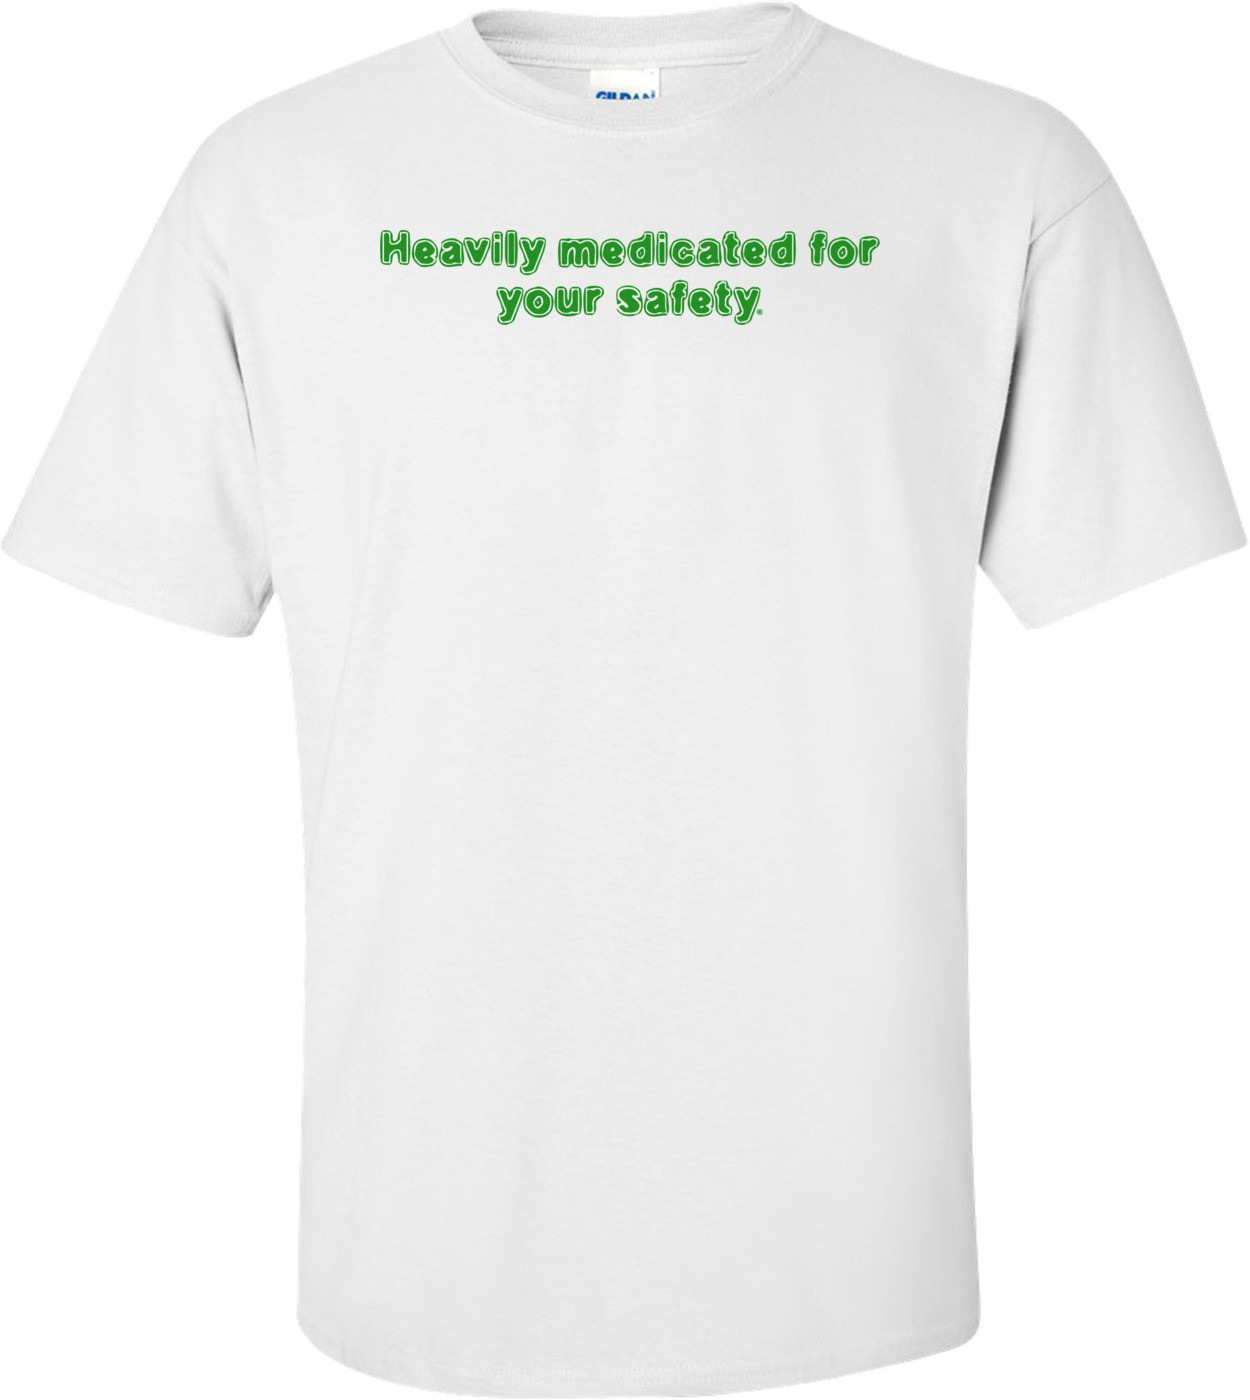 Heavily medicated for your safety. Shirt